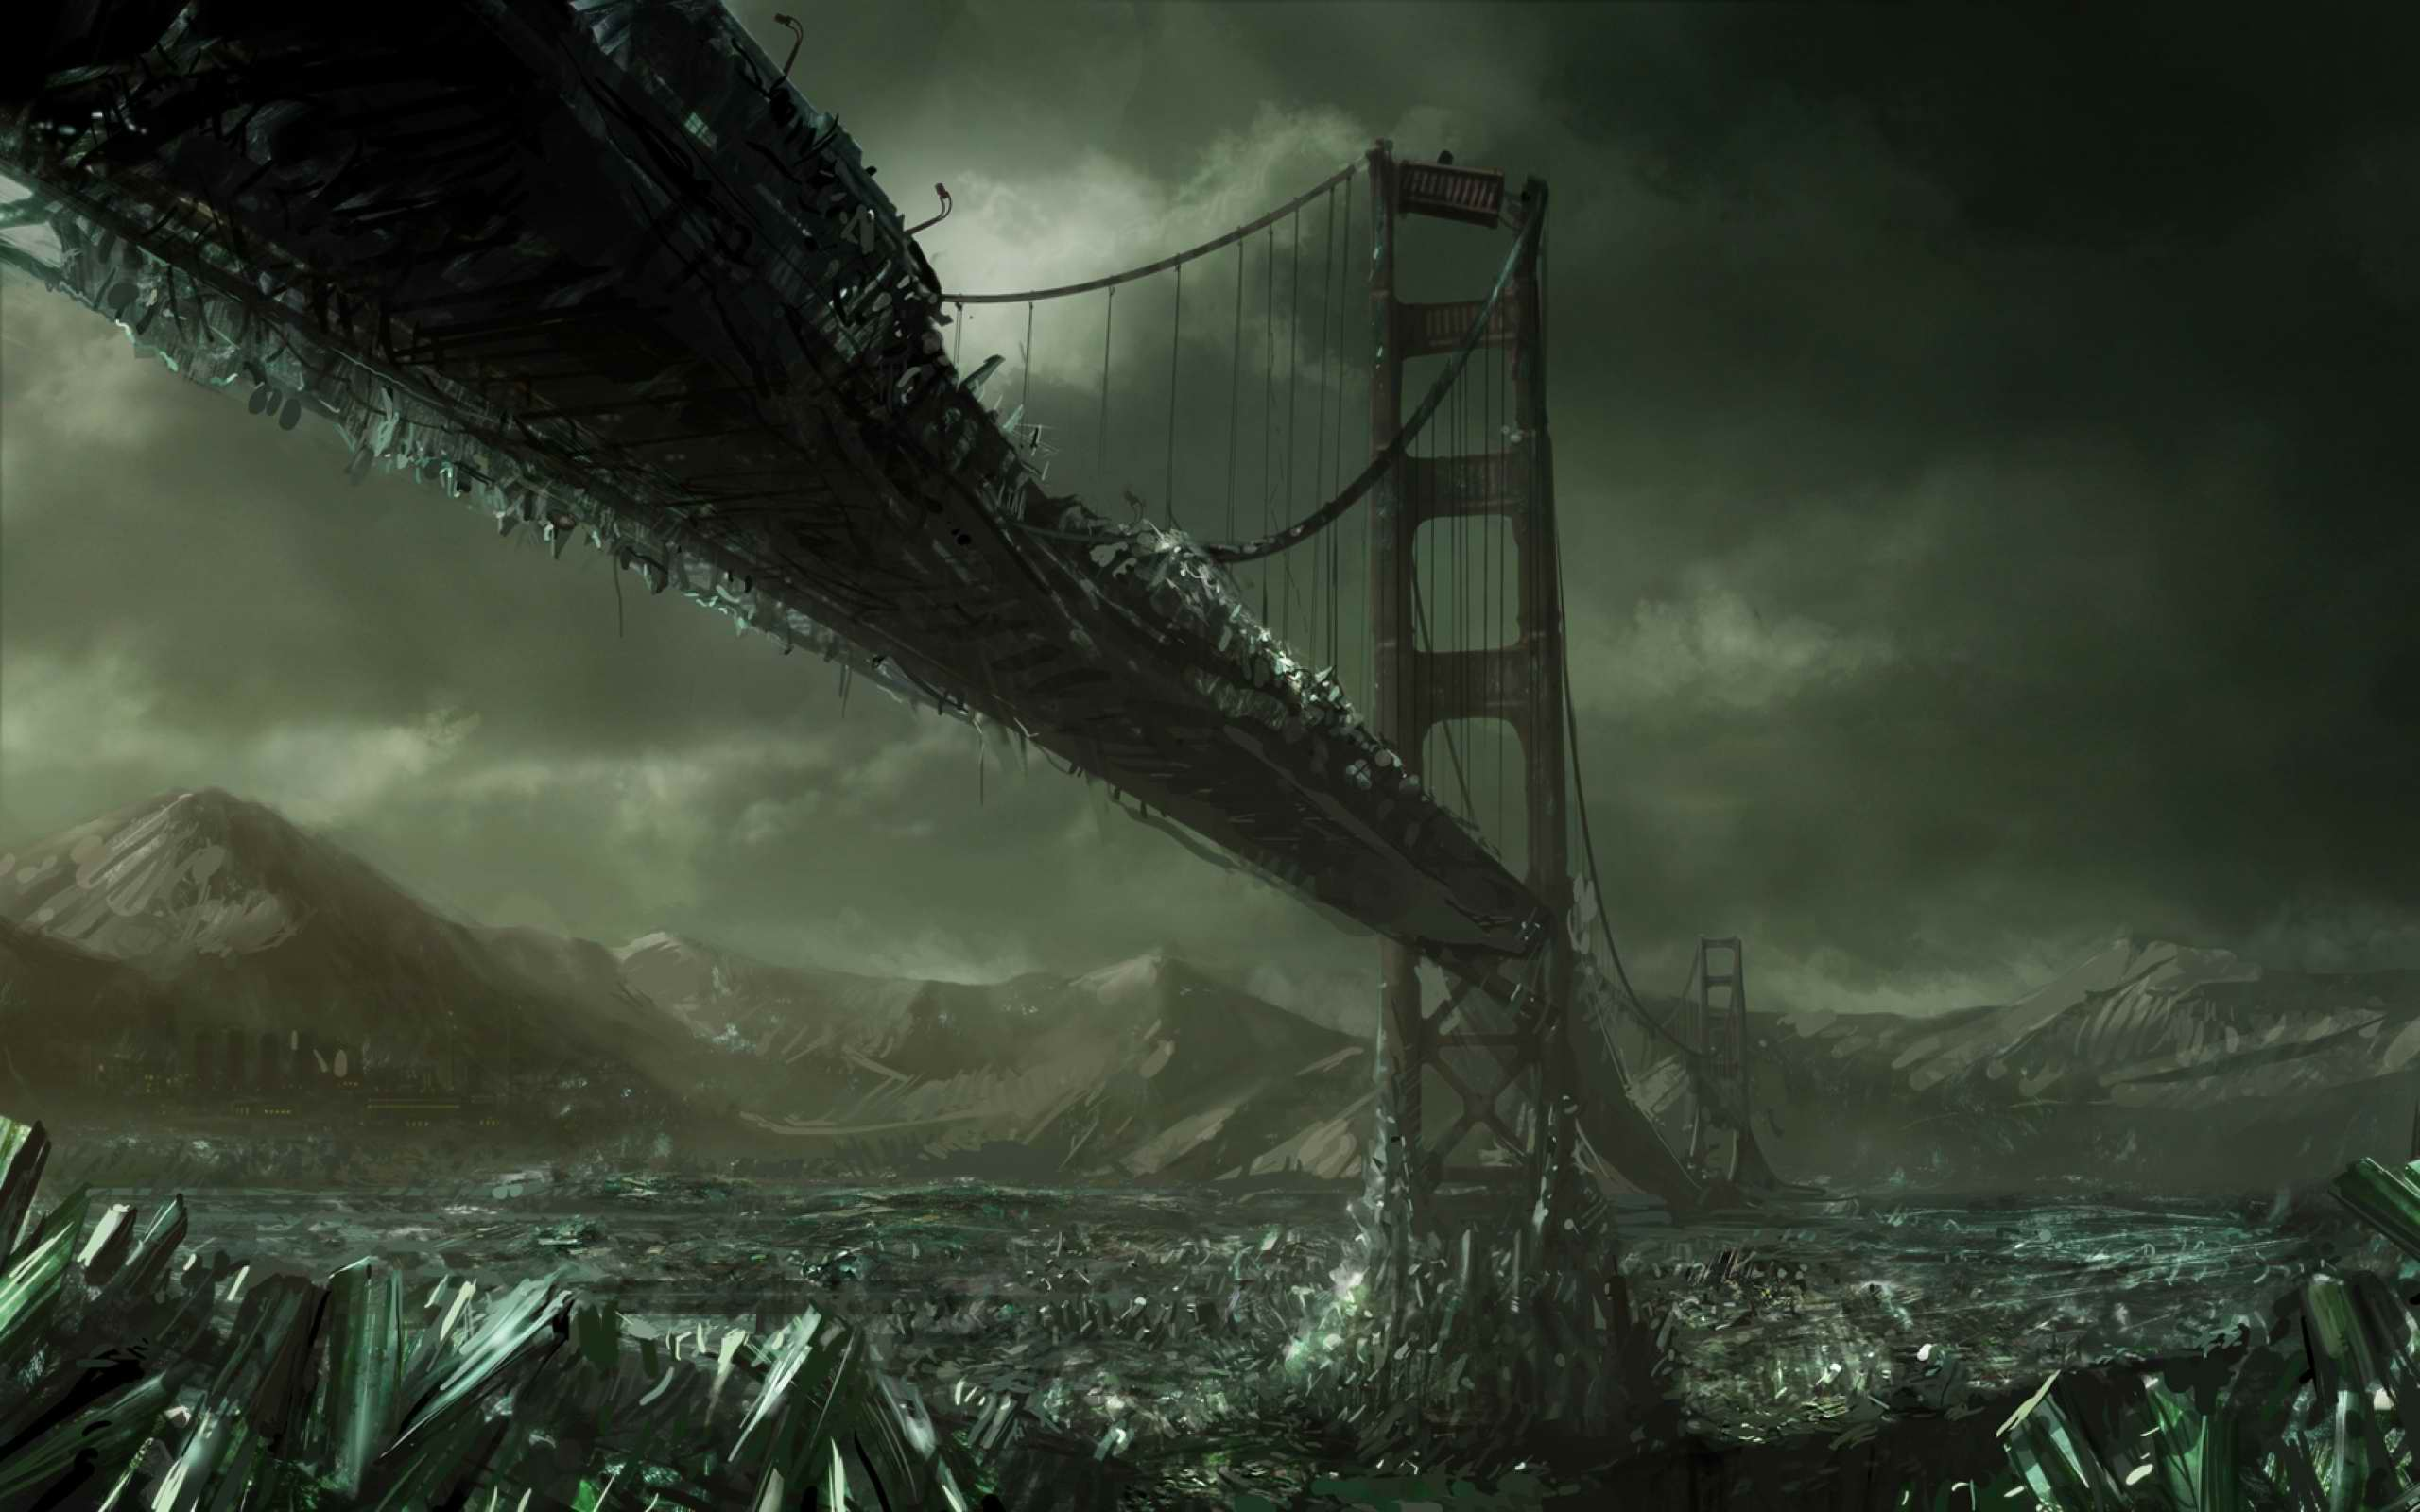 Ice Age, the Golden Gate Bridge